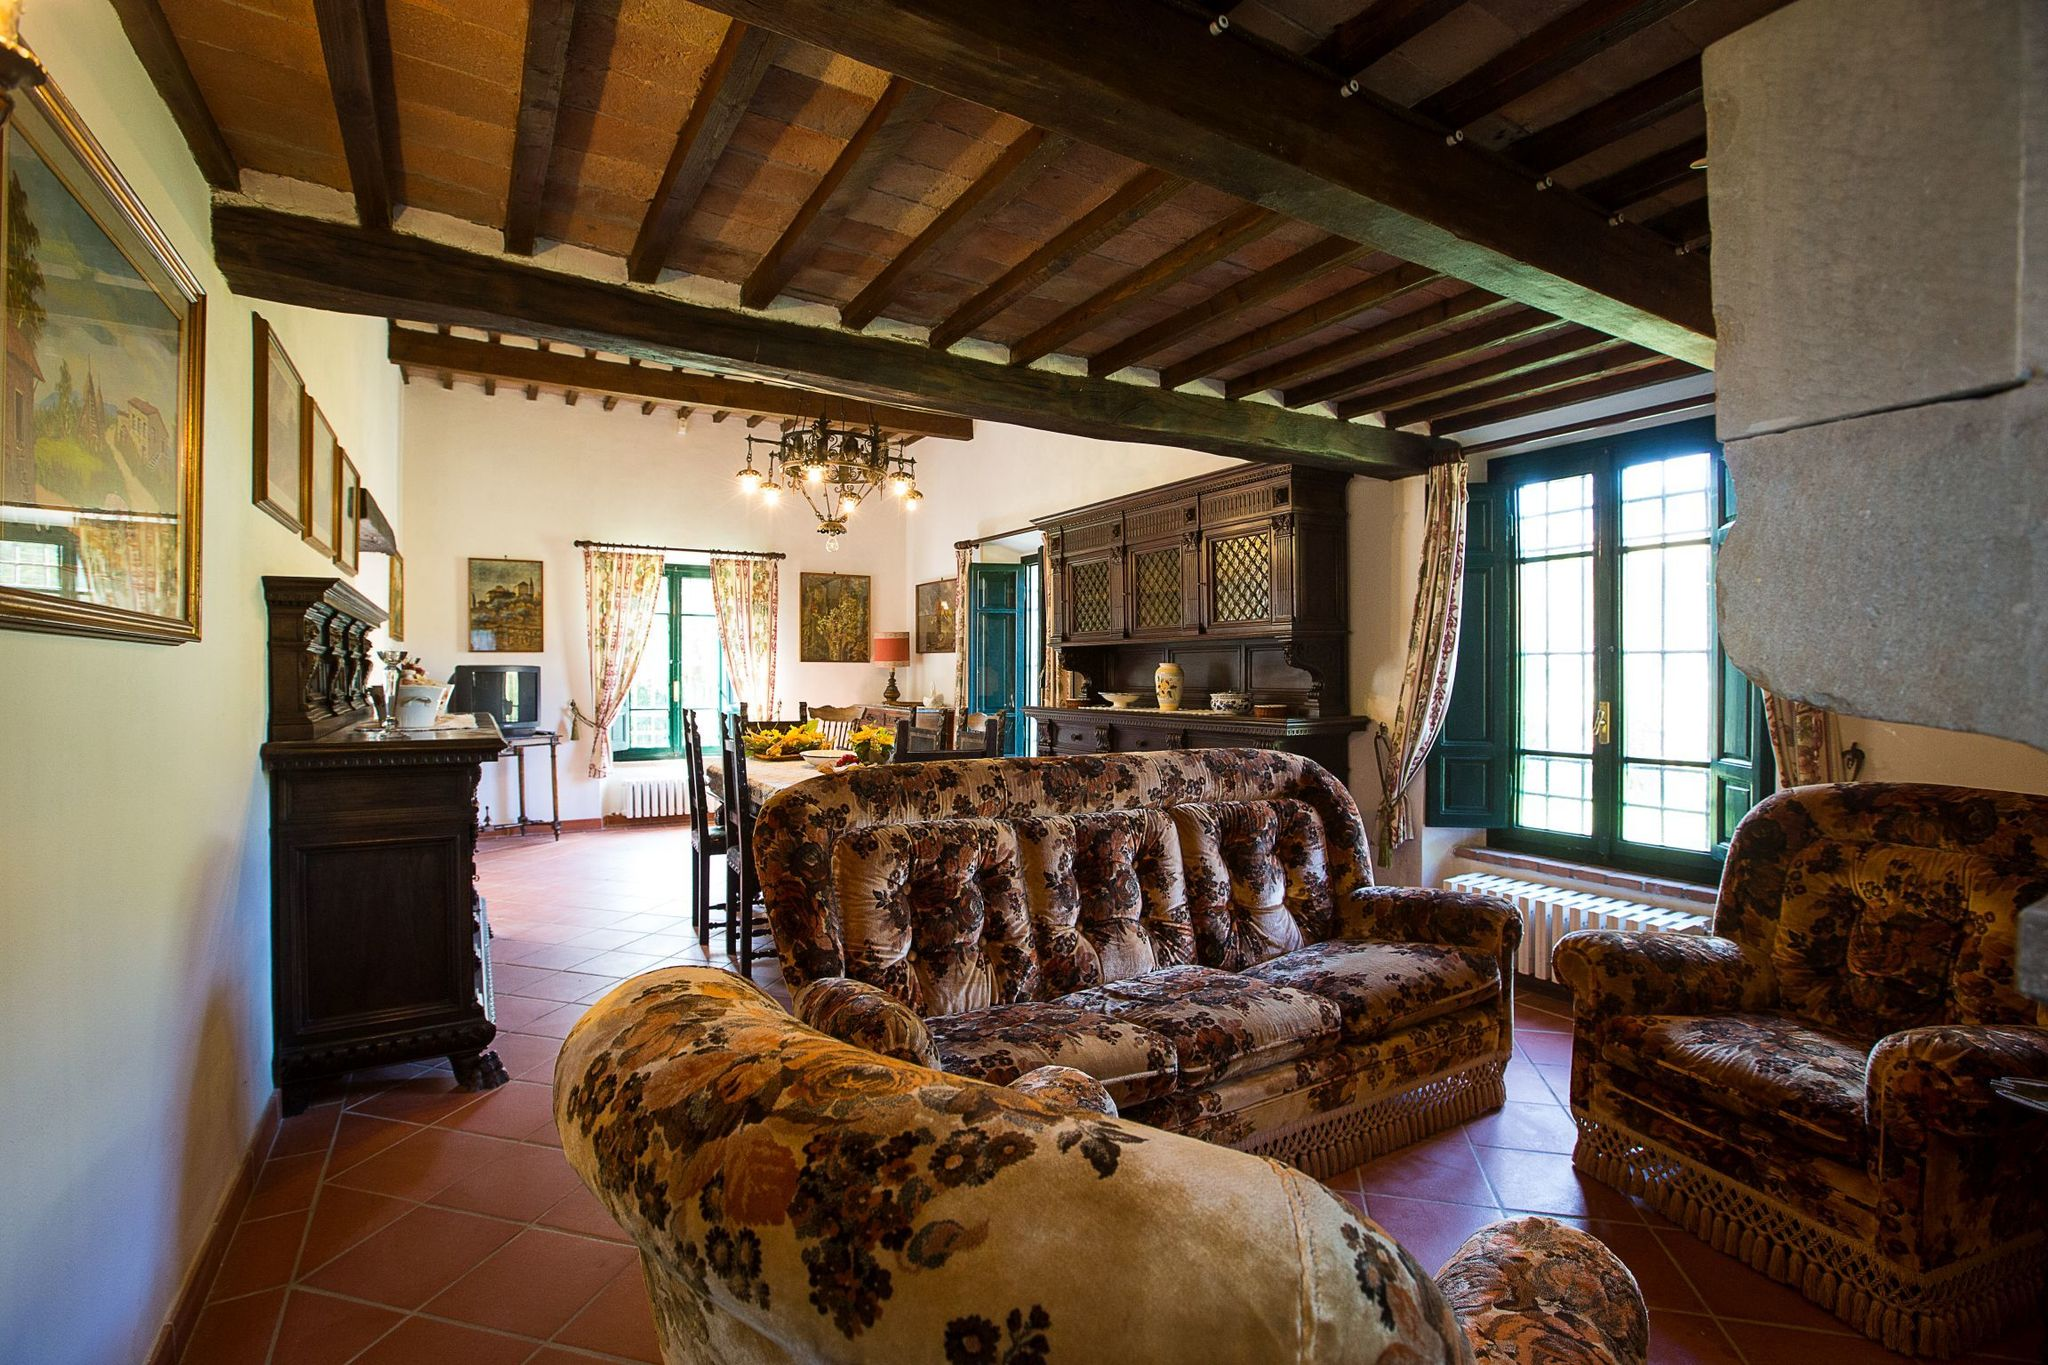 A rustic house set in the Tuscan landscape.